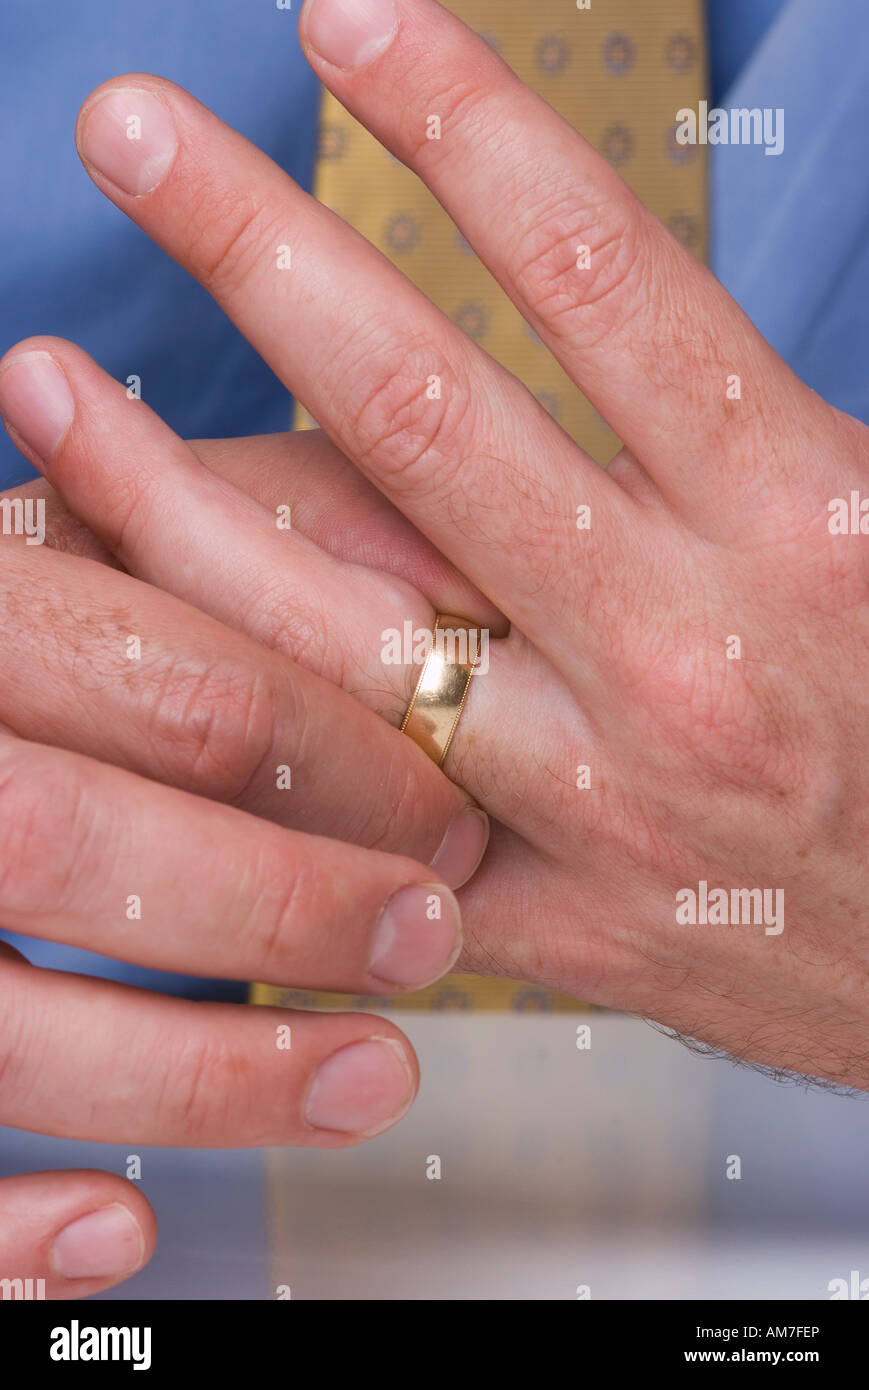 Mans Hand Wedding Ring Stock Photos & Mans Hand Wedding Ring Stock ...